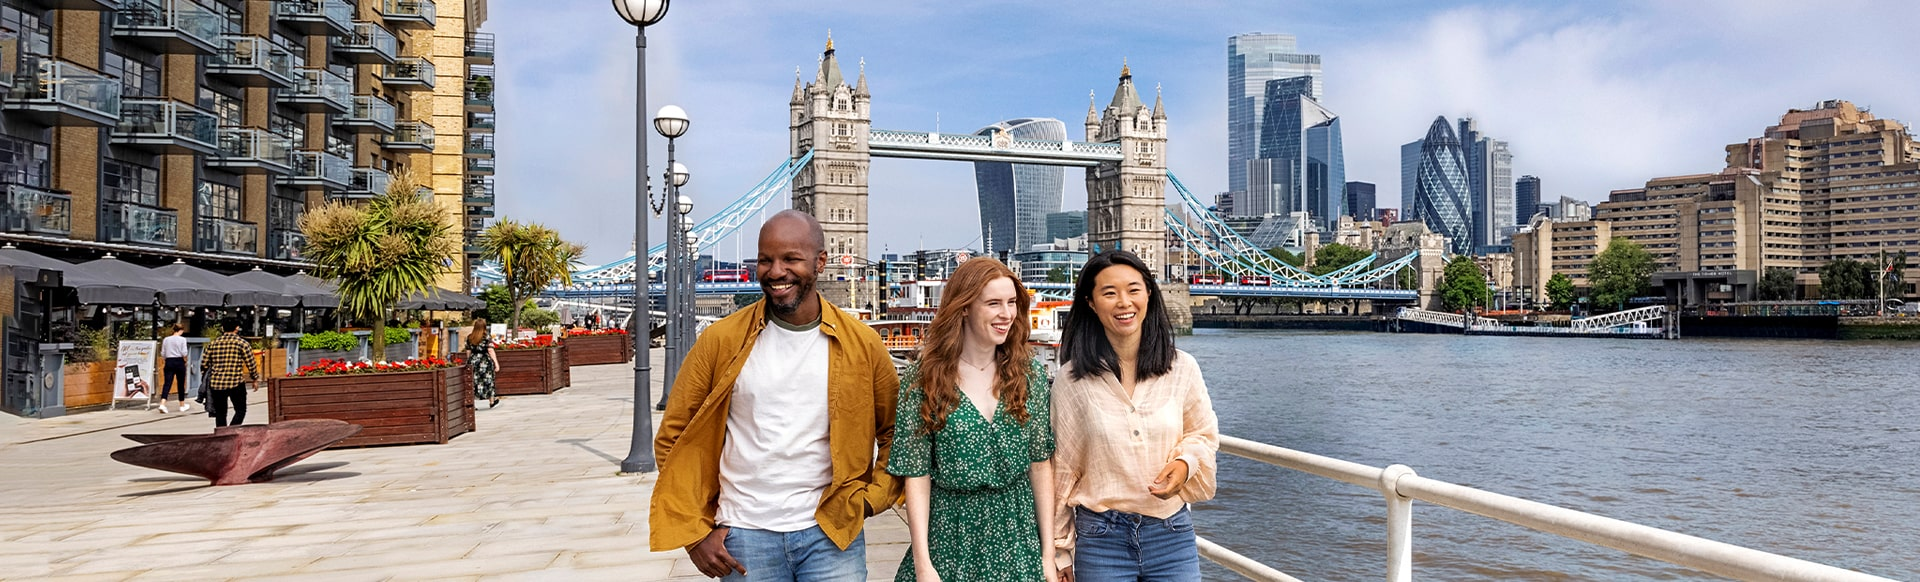 Man and two women walking alongside the river Thames with Tower Bridge and the City of London in the background